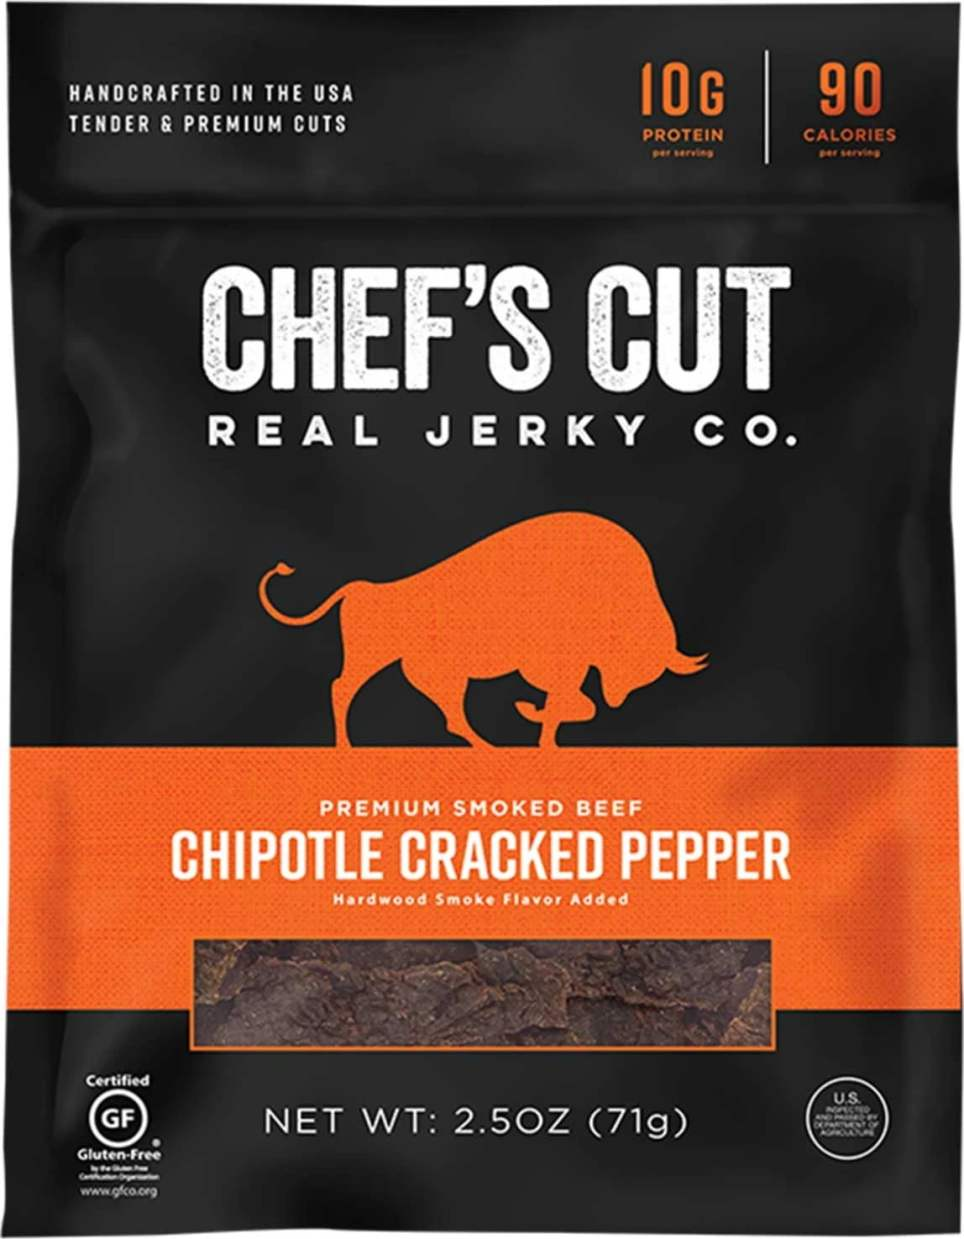 Chef's Cut Real Jerky Co. Chipotle Cracked Pepper